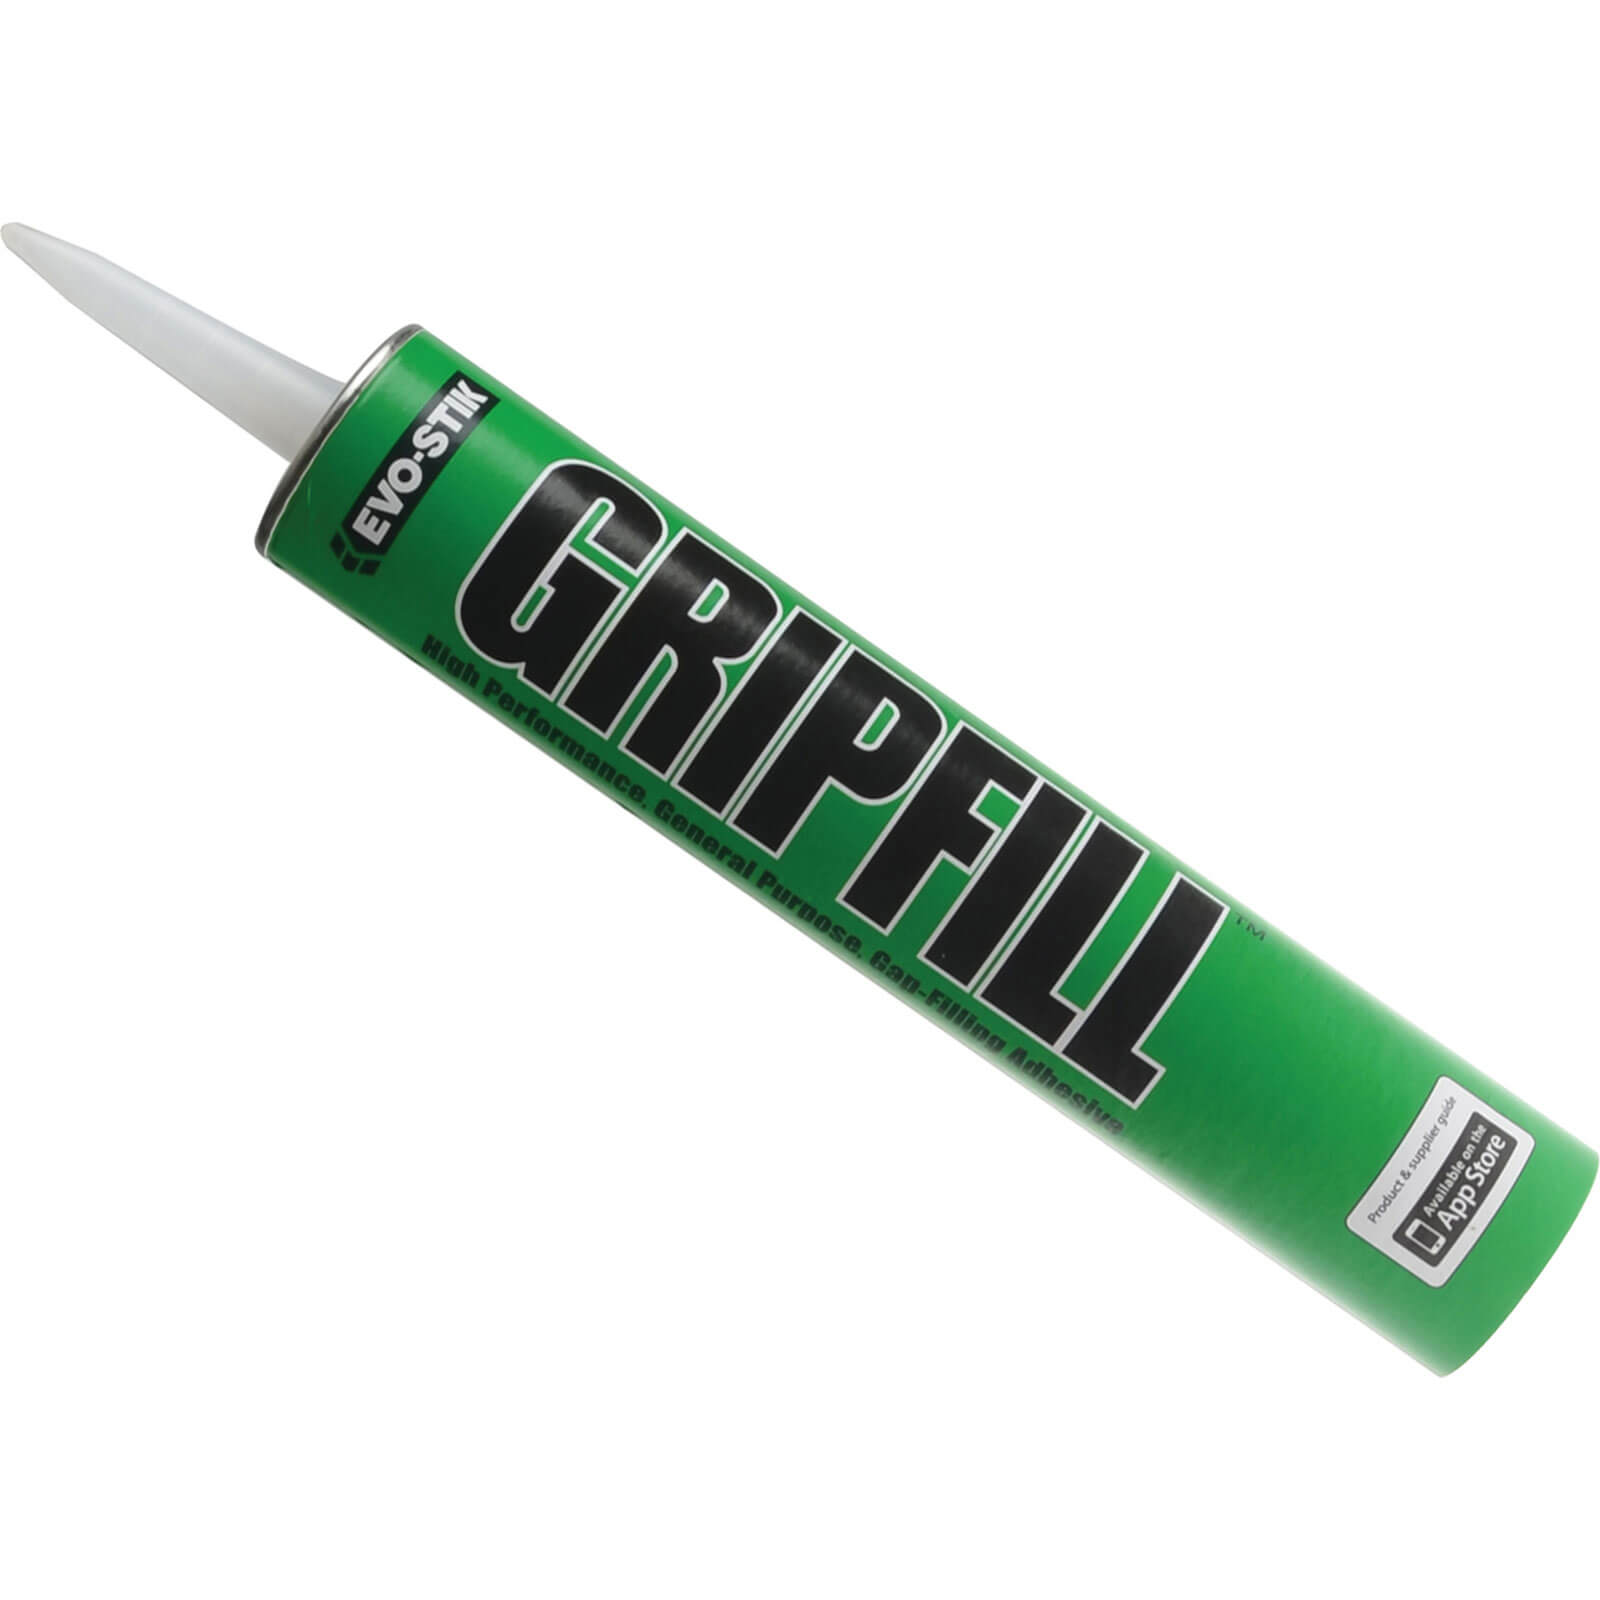 Image of EvoStik Gripfill Gap Filling Adhesive 350ml